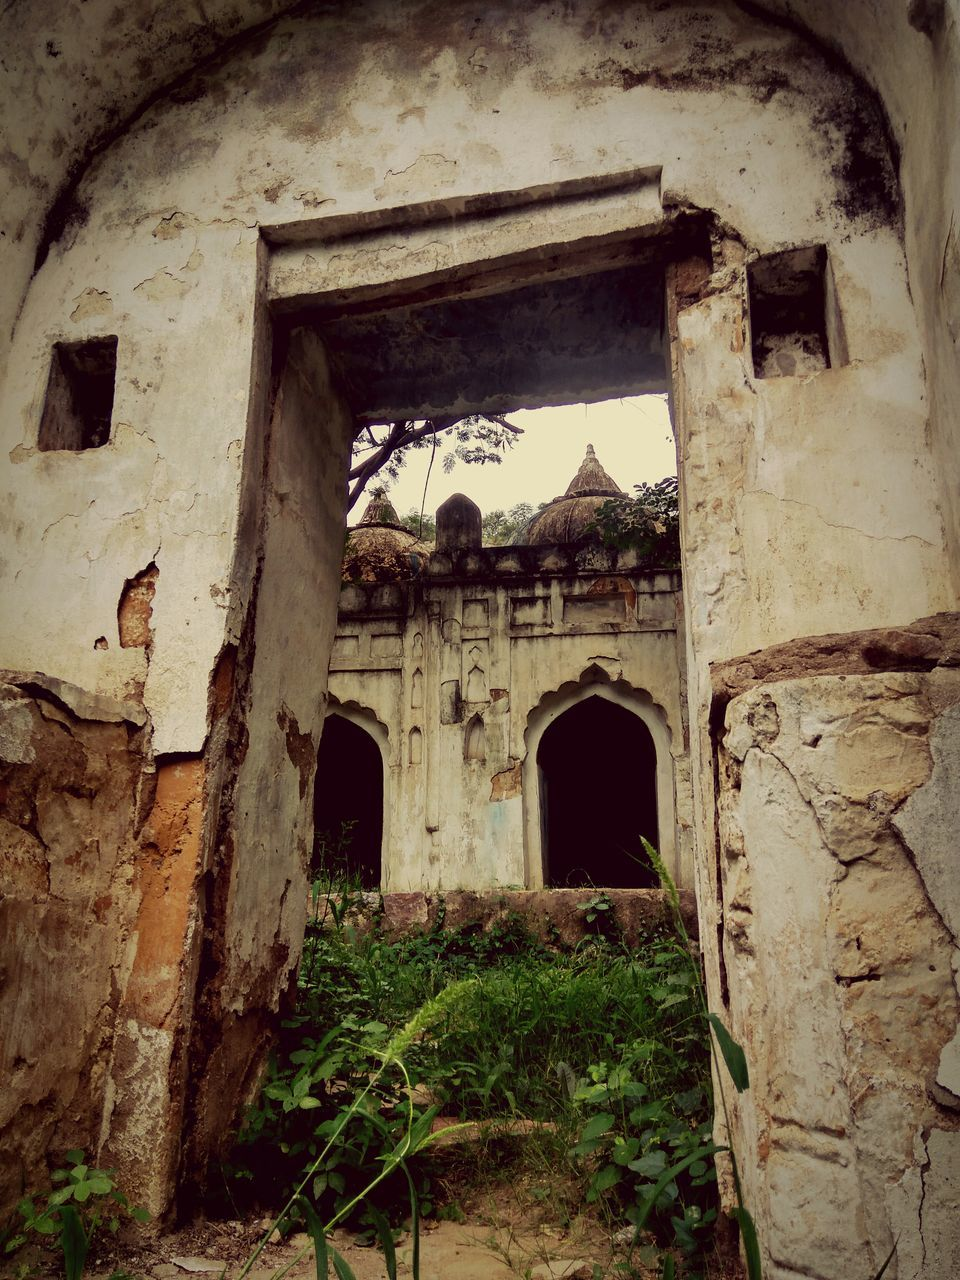 arch, architecture, built structure, entrance, doorway, building exterior, damaged, history, no people, old ruin, day, outdoors